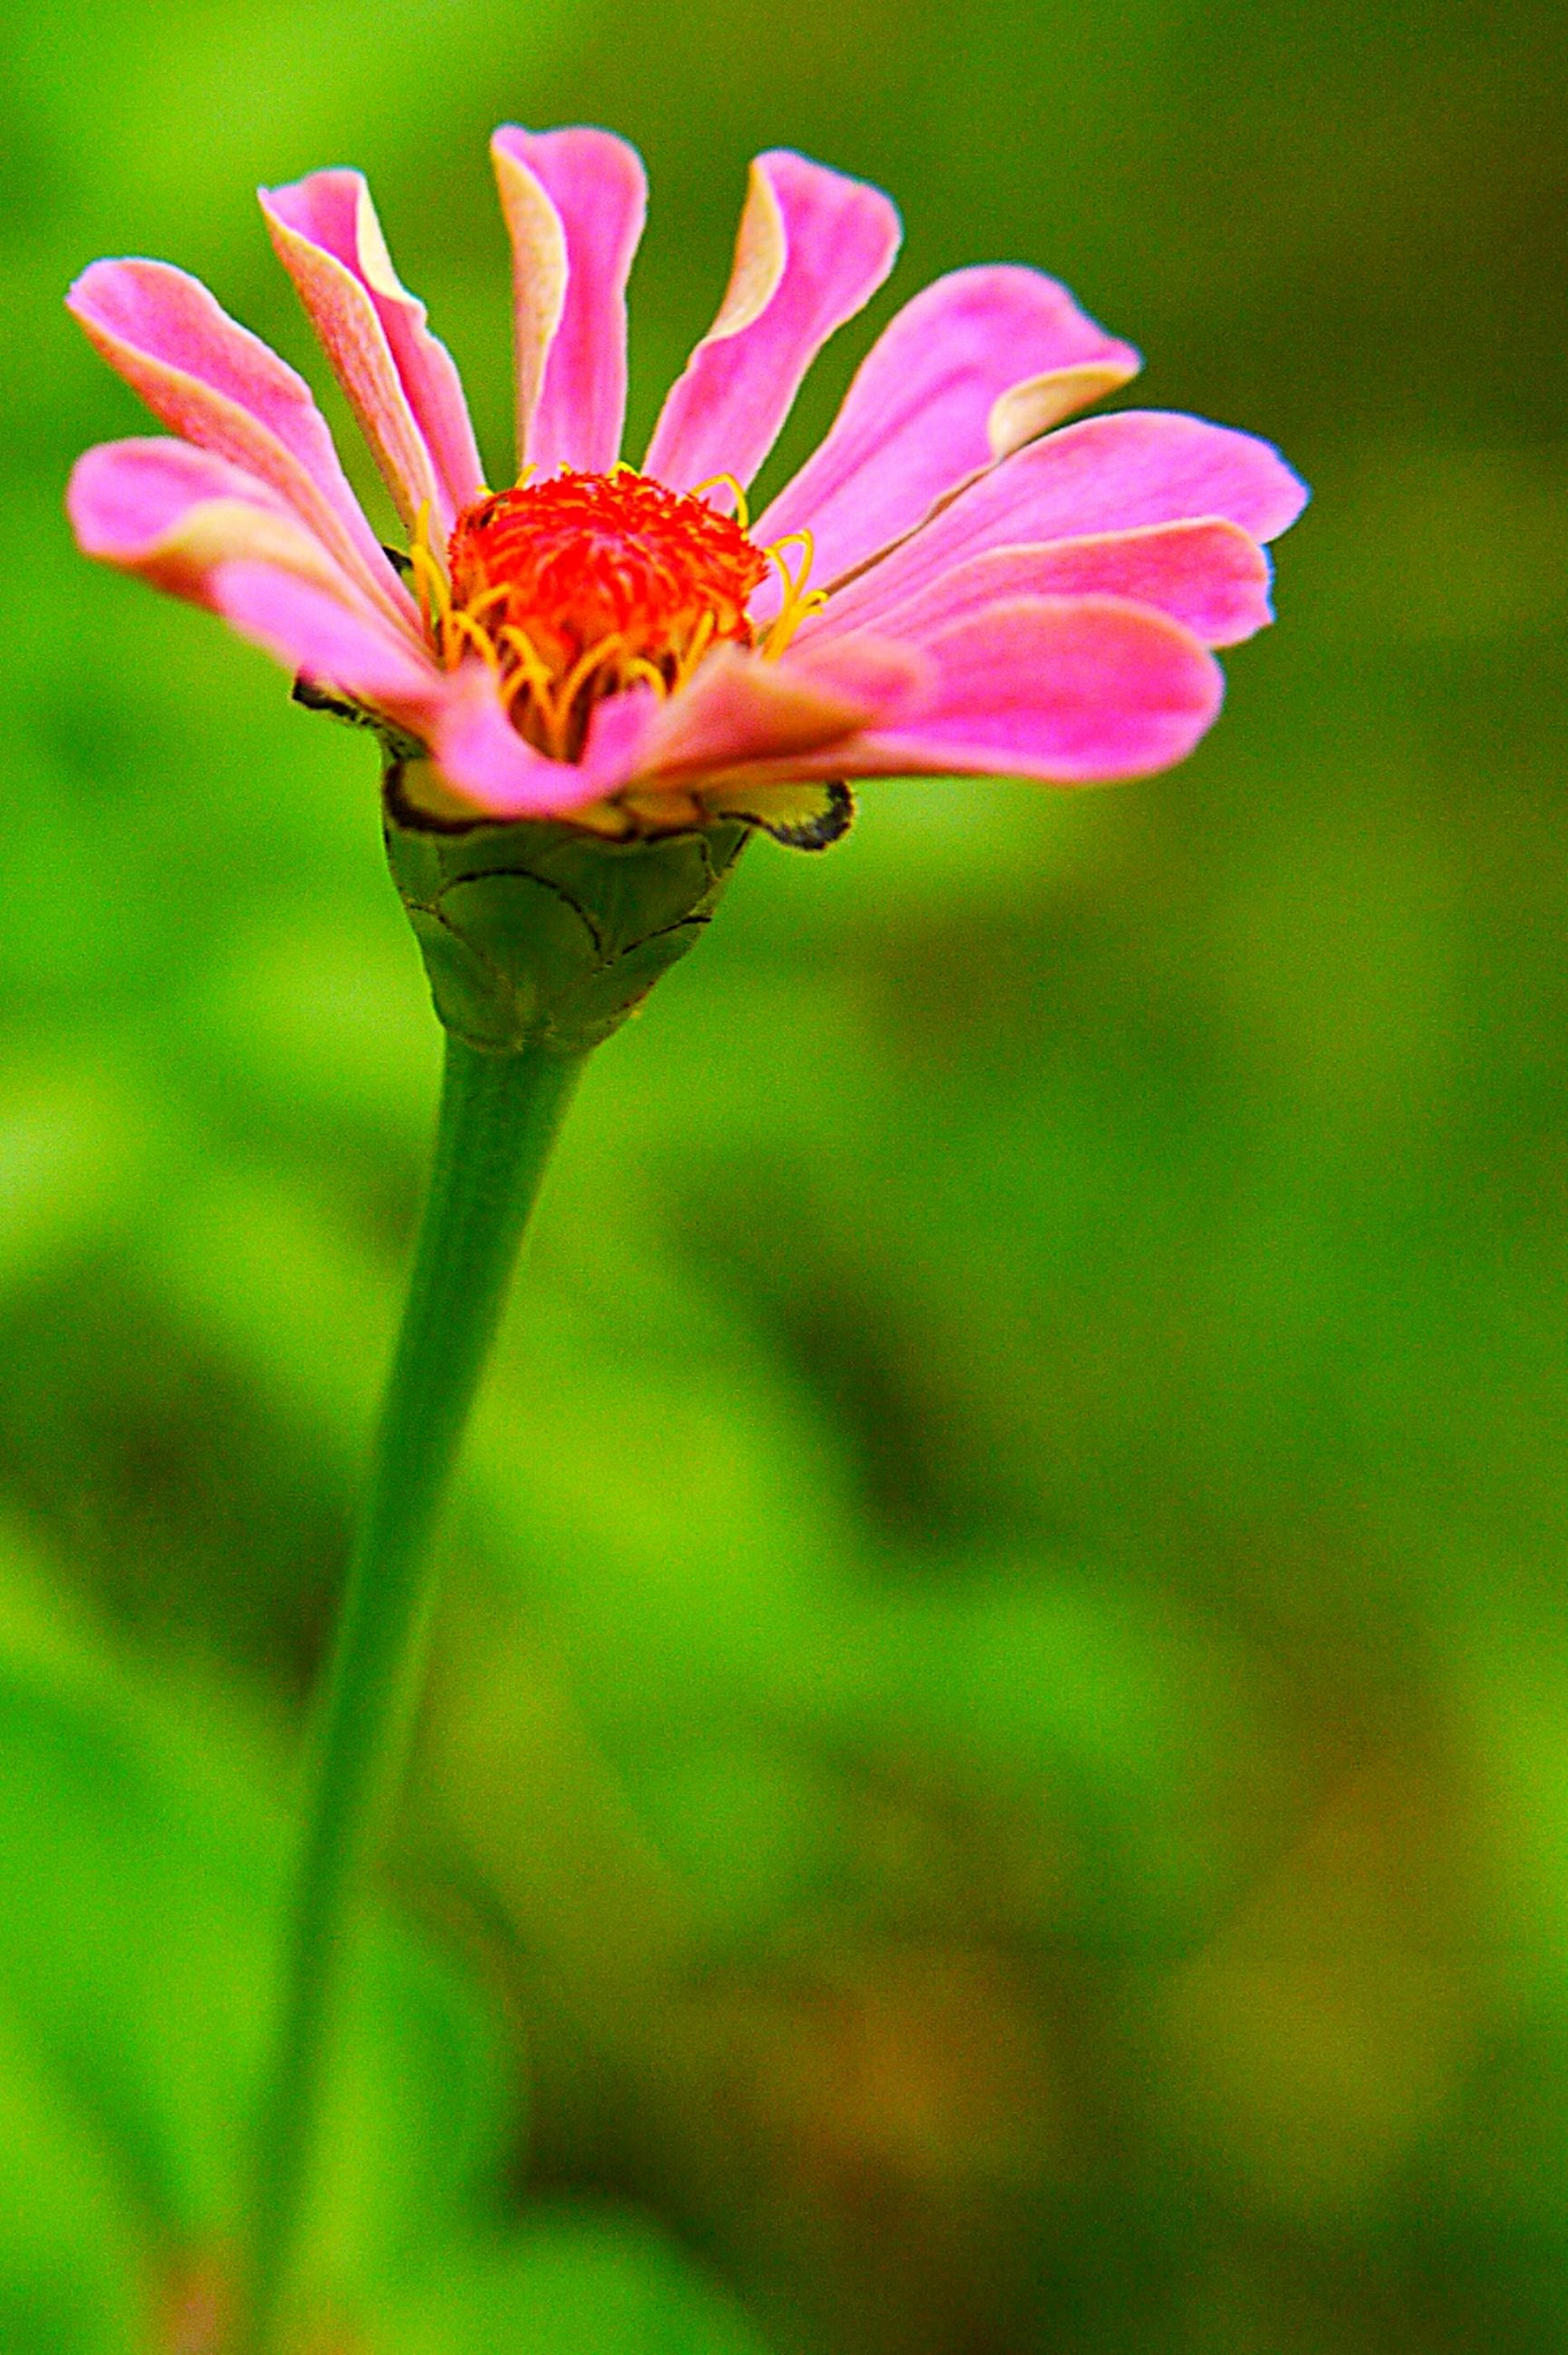 flower, freshness, fragility, petal, flower head, growth, close-up, focus on foreground, beauty in nature, stem, nature, pink color, plant, single flower, blooming, selective focus, in bloom, bud, blossom, outdoors